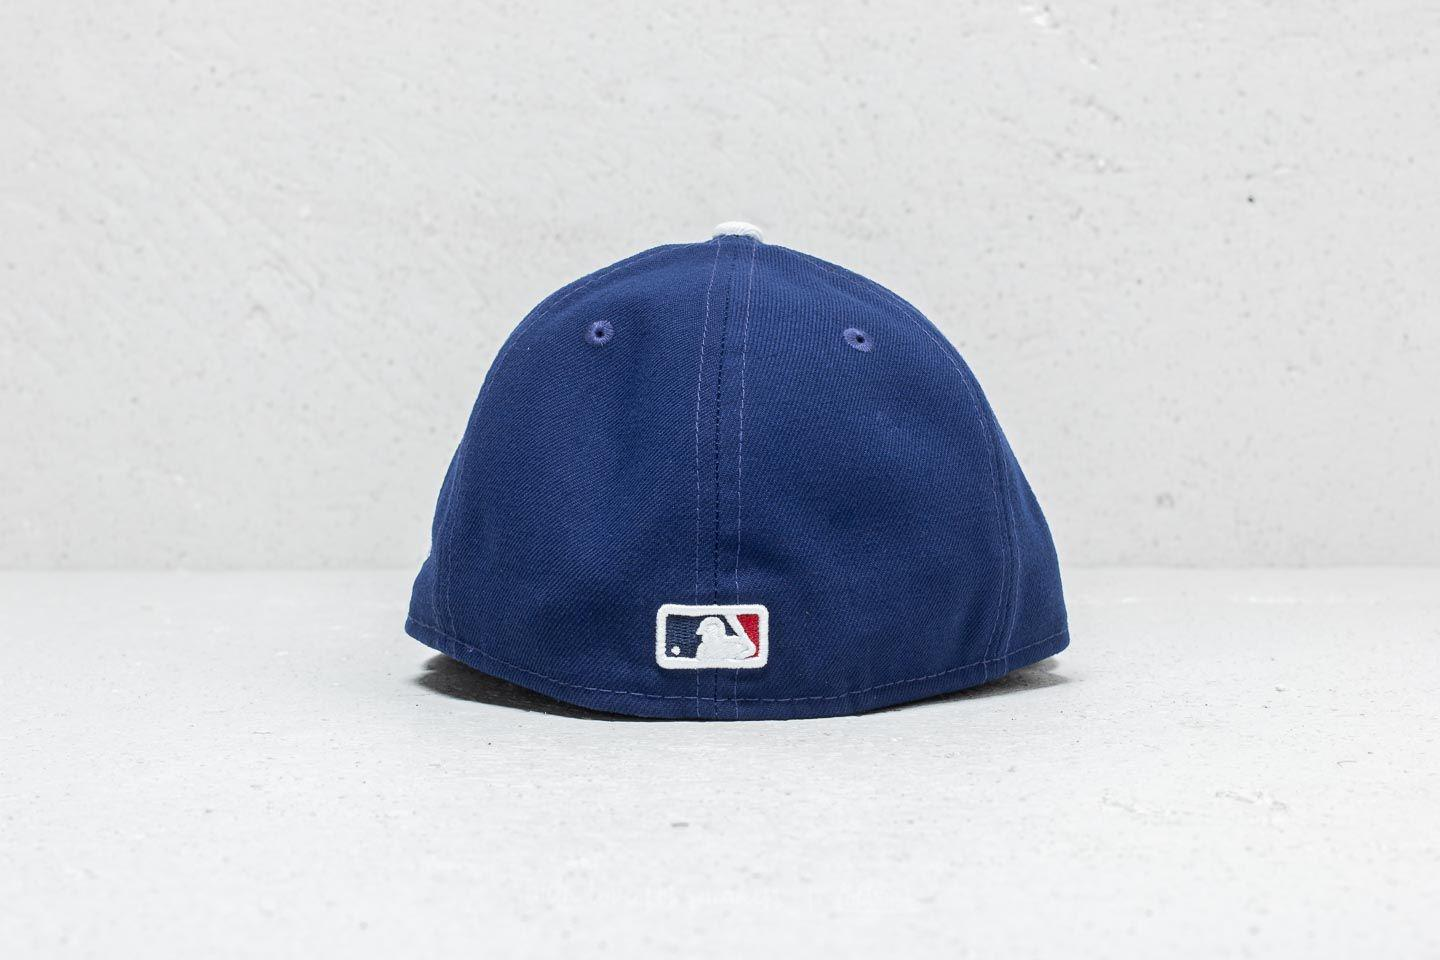 60c42c56052 ... where to buy new york yankees cap navy for men lyst. view fullscreen  5b157 420a7